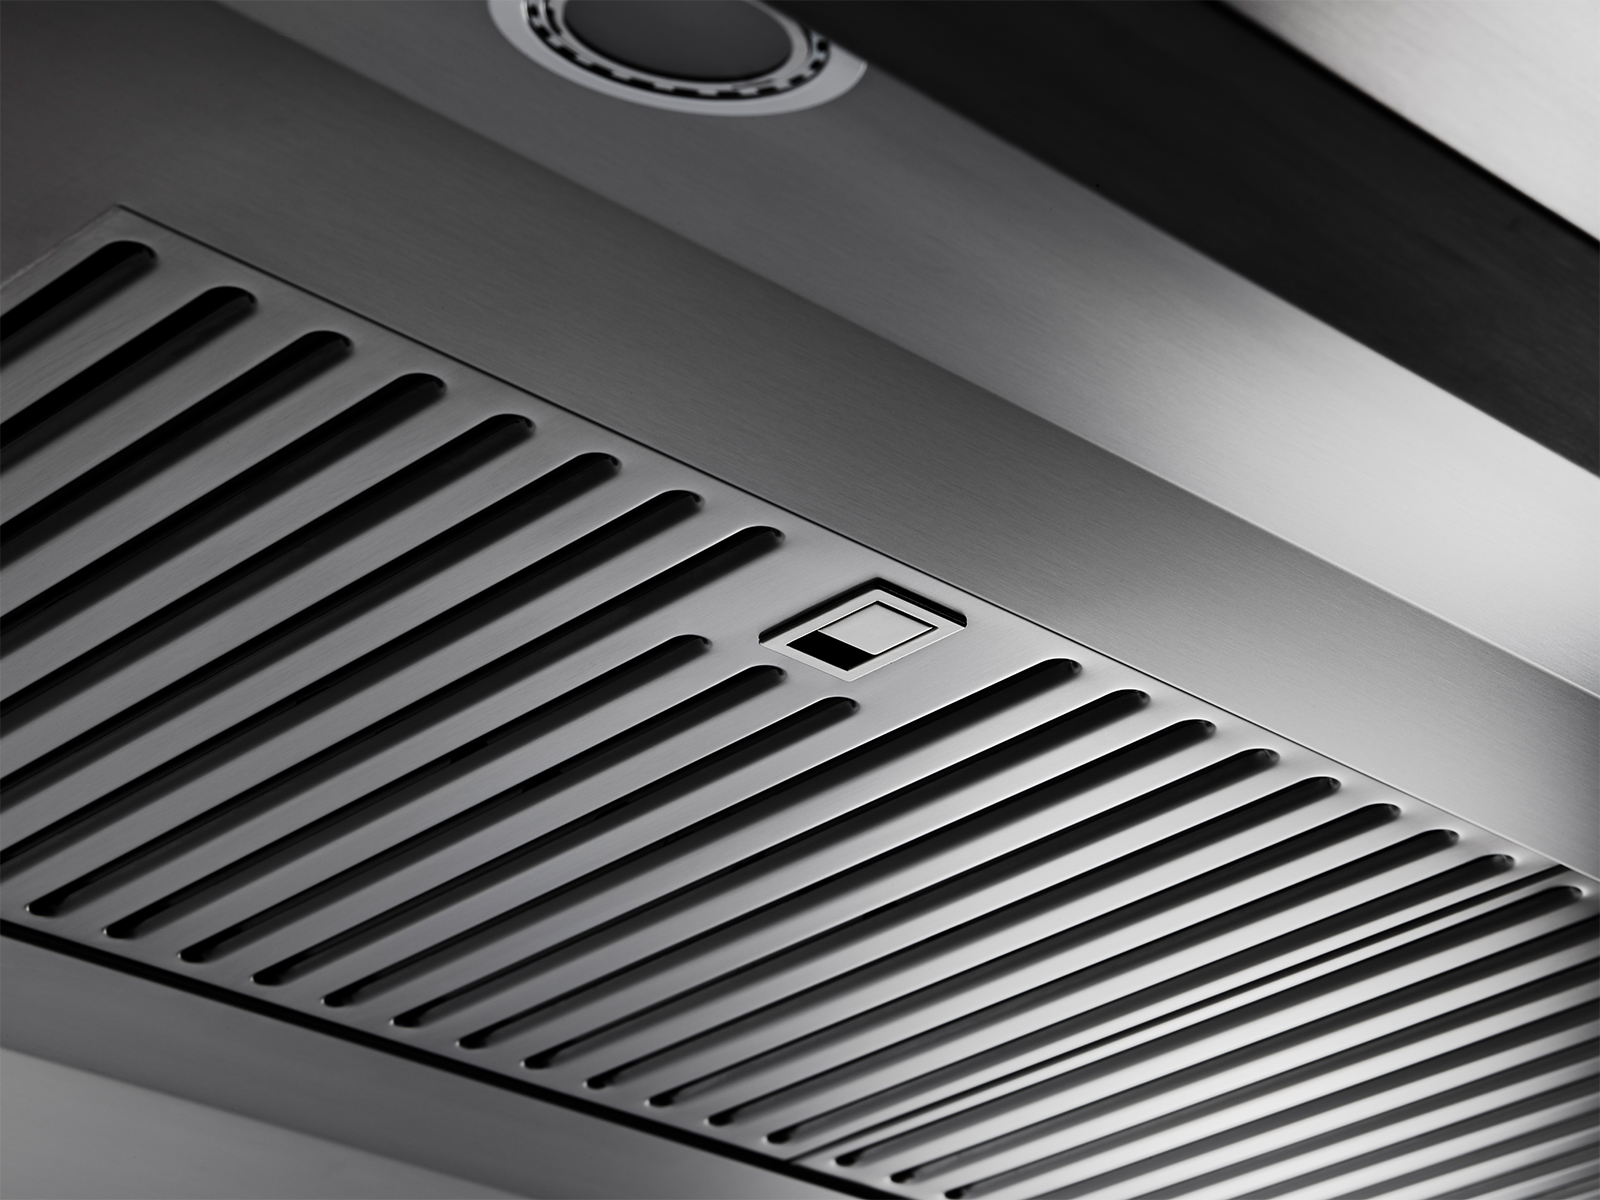 The grill of a Dacor ventilation hood.